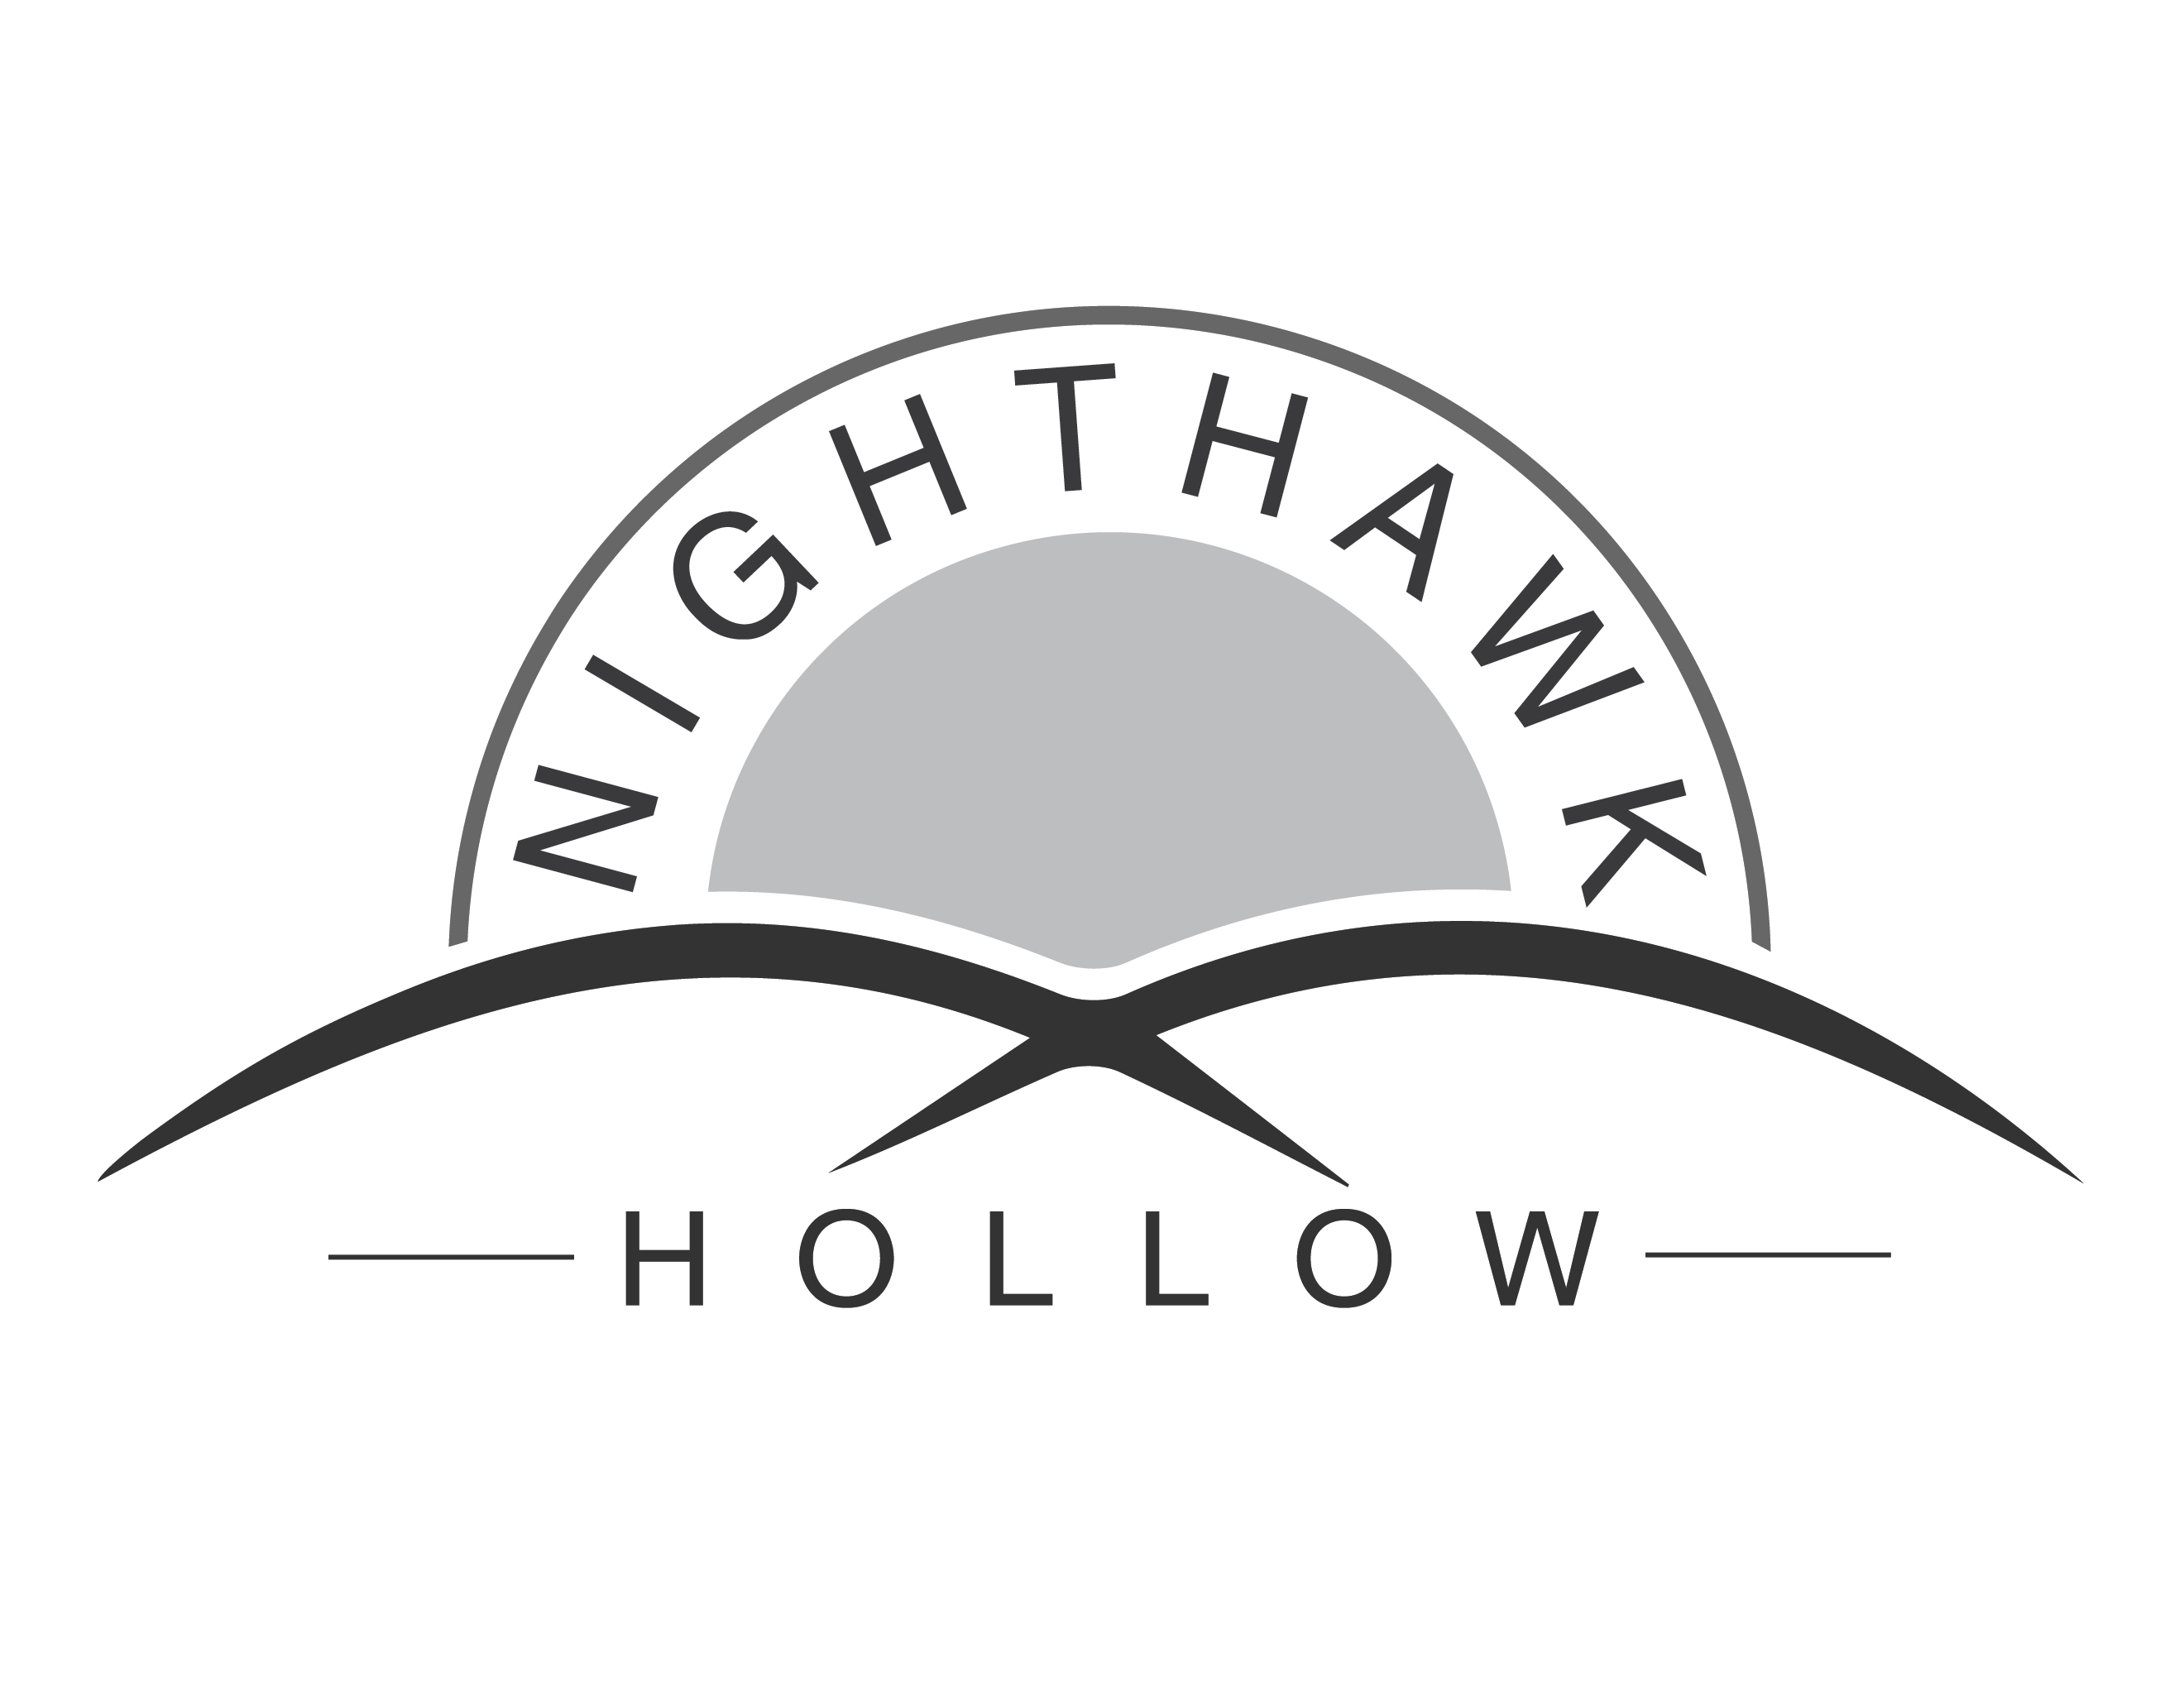 nighthawk__hollow_Logo